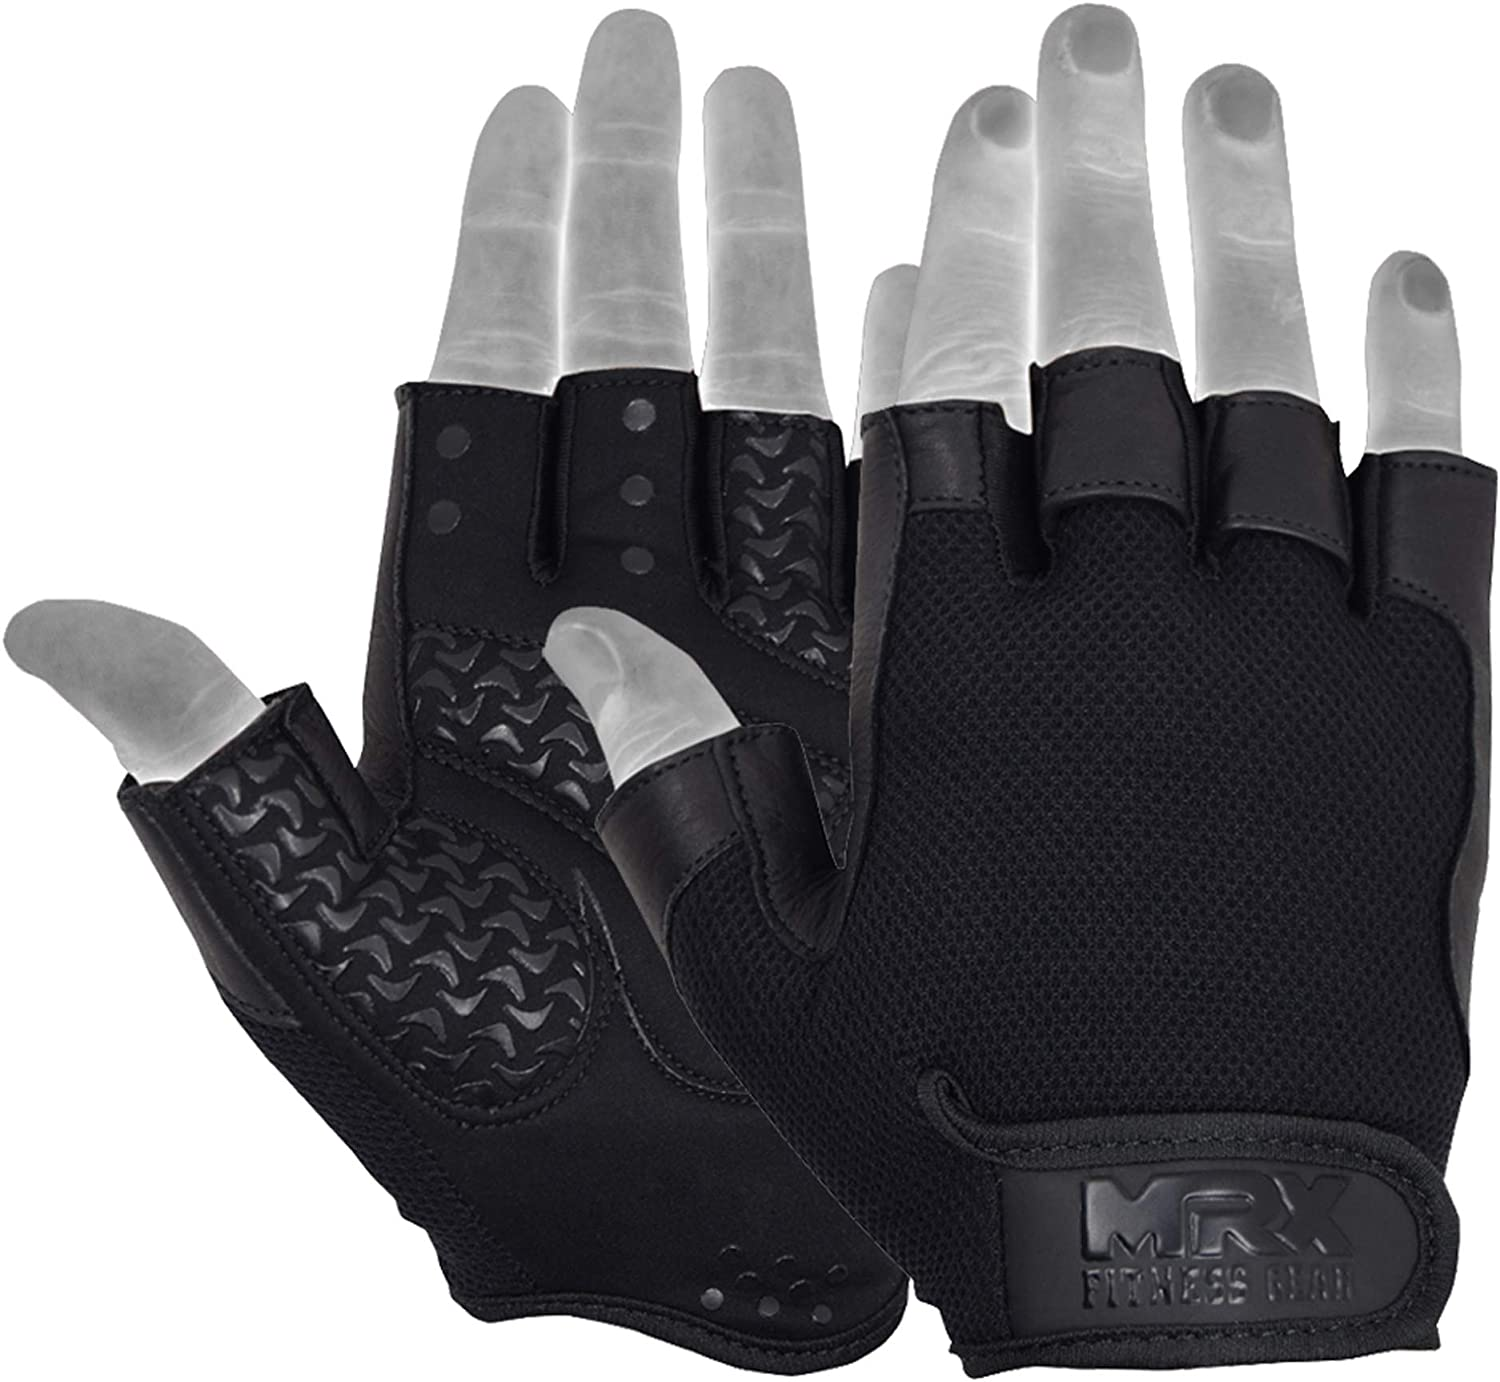 Leather Gym Gloves Weight Lifting Body Building Fitness Exercise Training Cycle